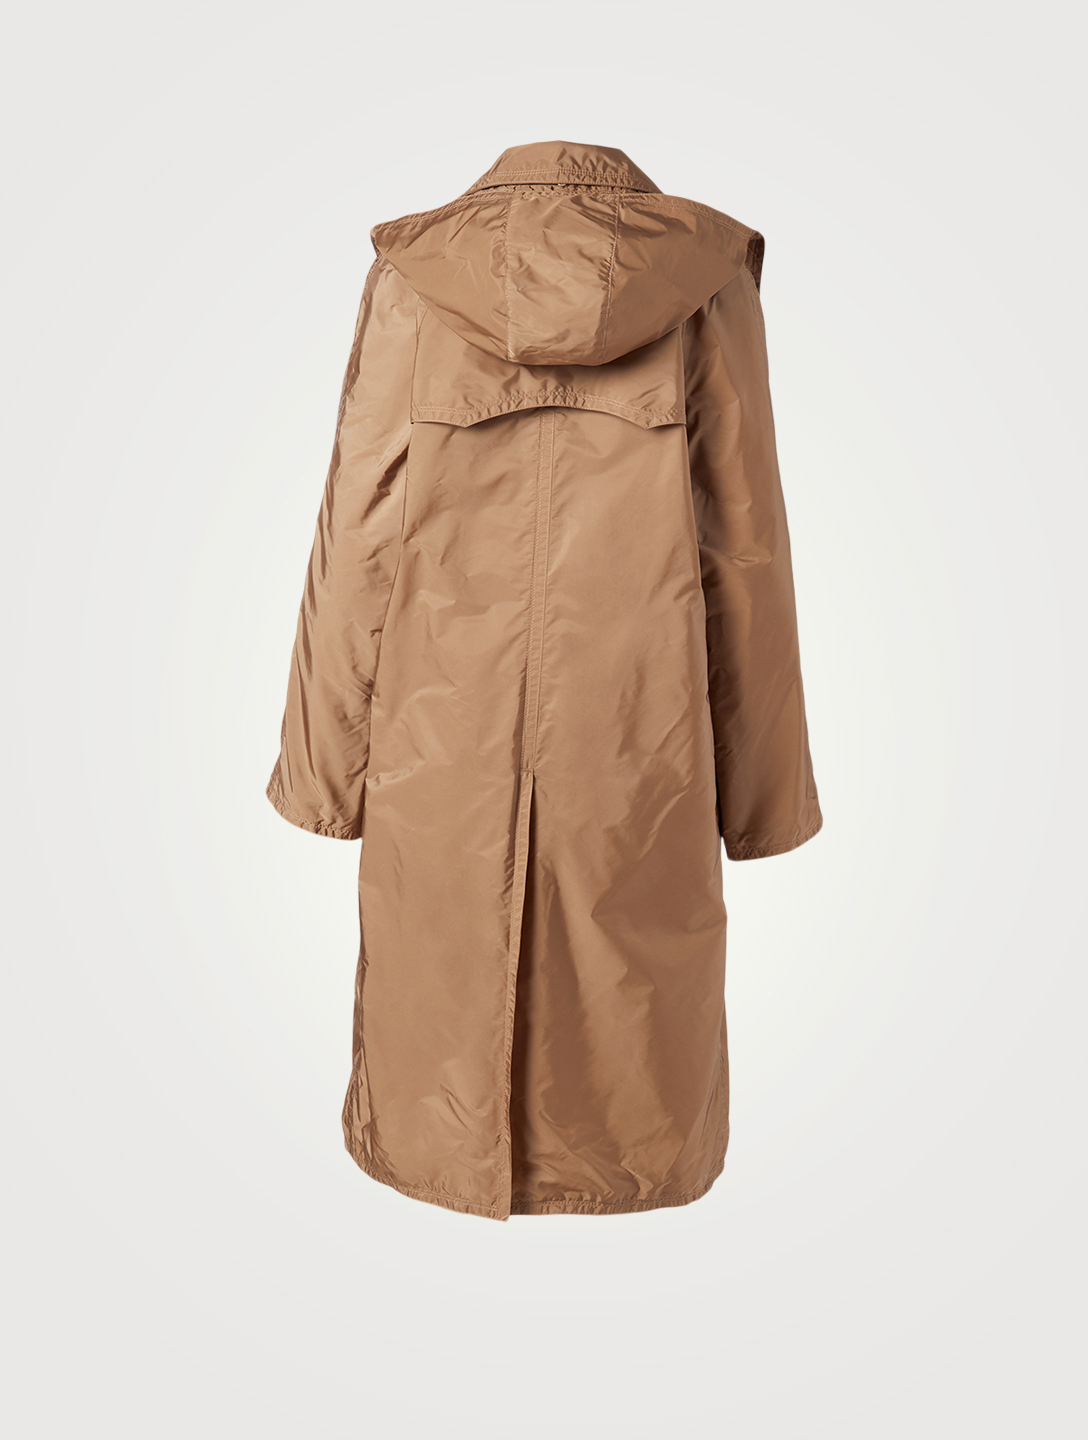 MONCLER Vanille Long Coat Women's Beige